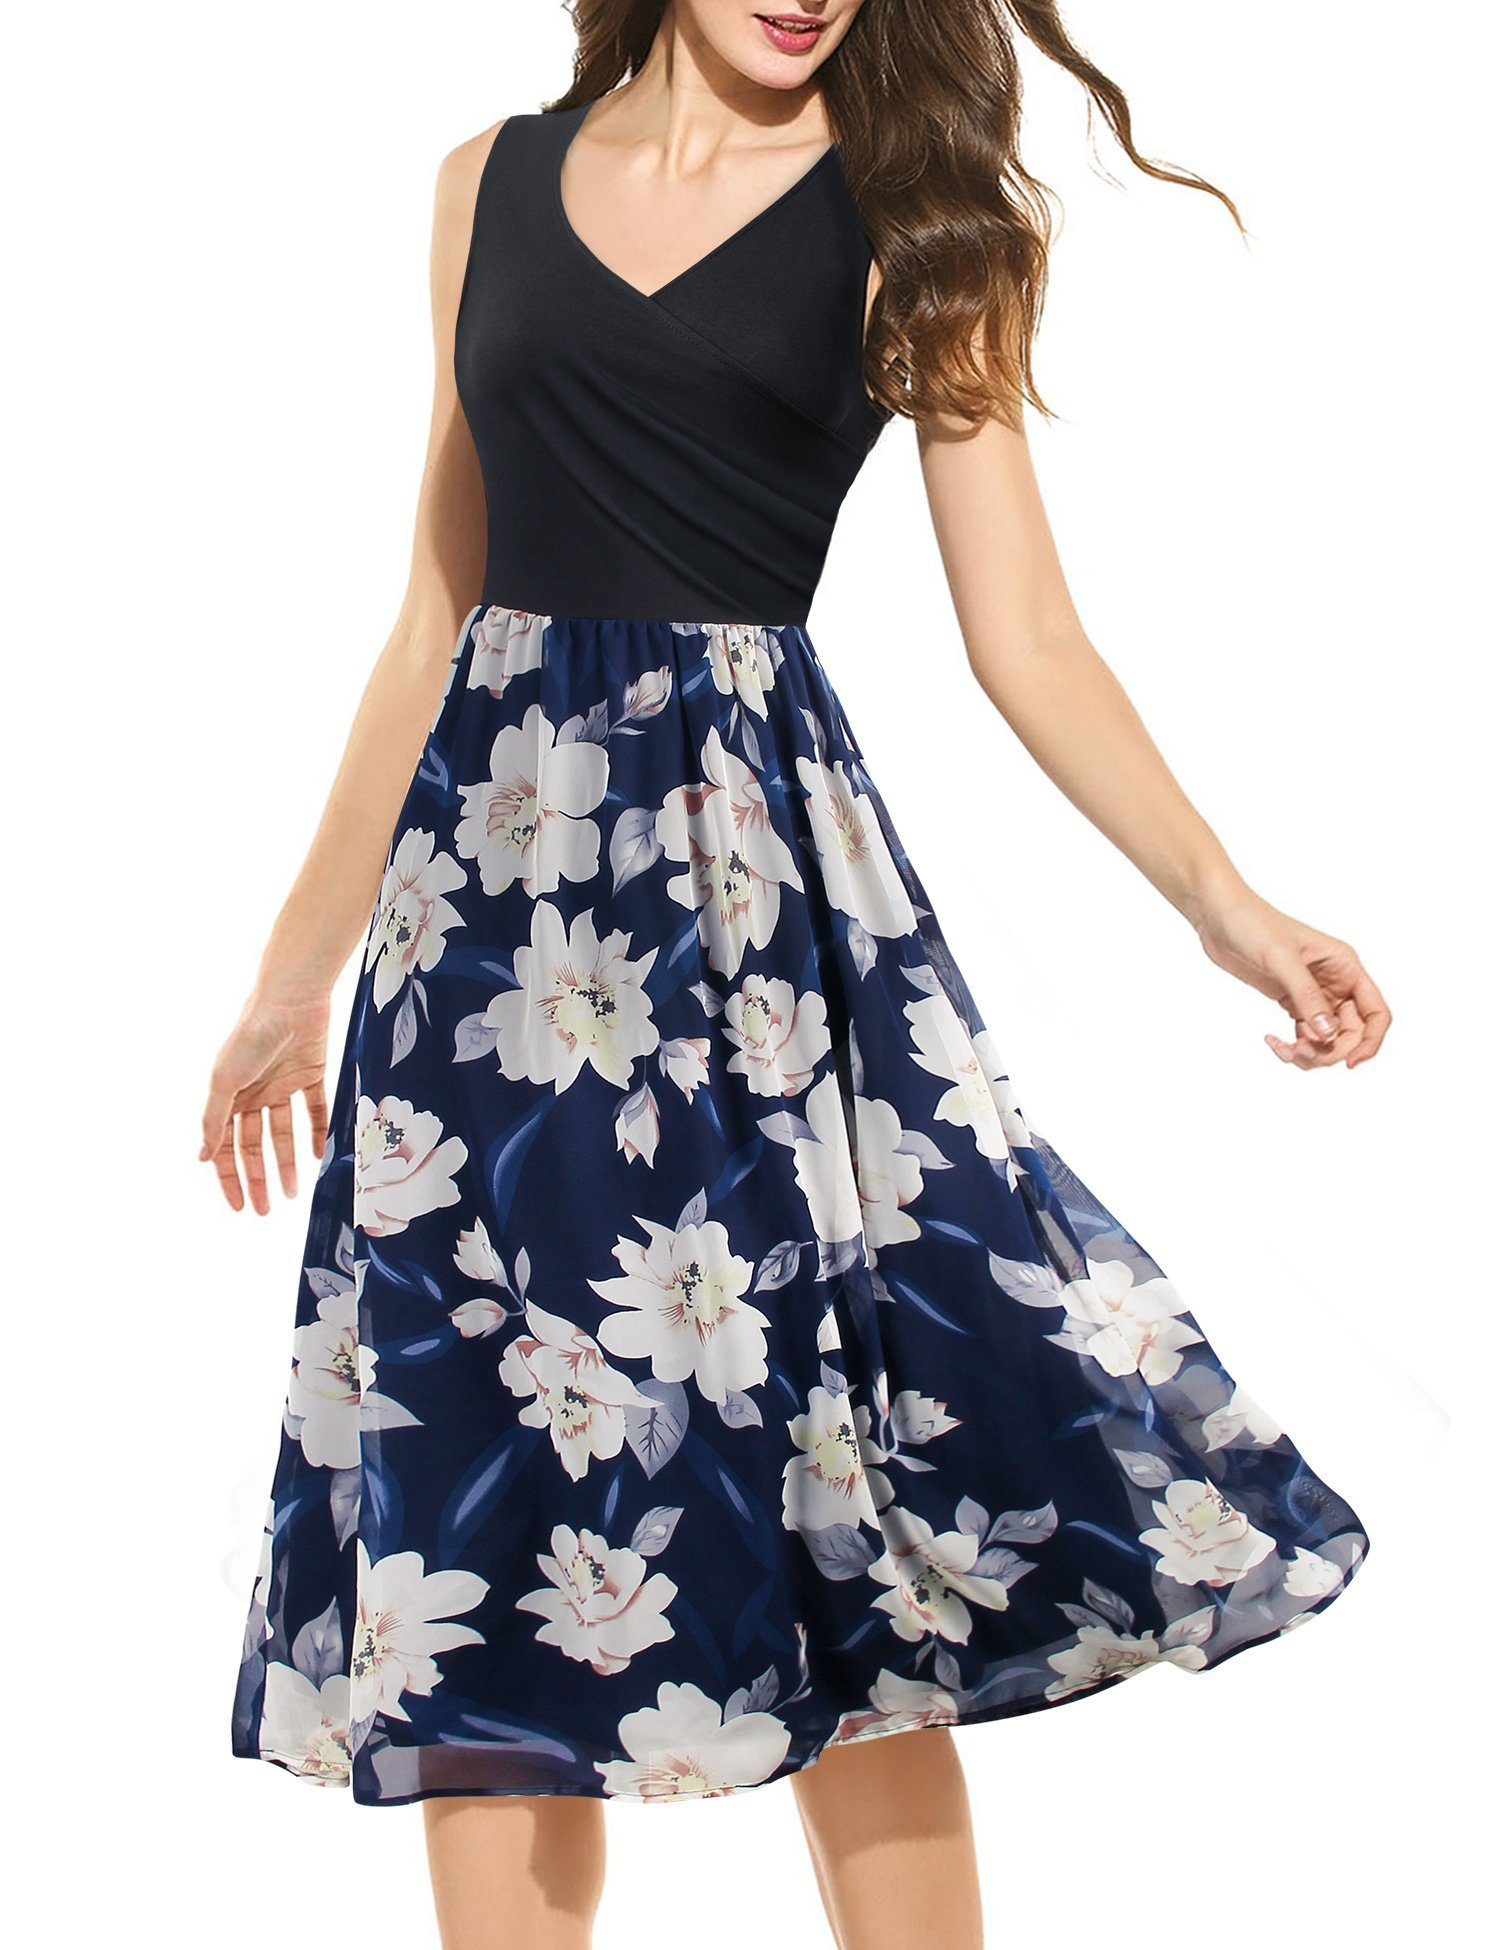 Messic Direct Black Dresses for Women Work Casual Cross V Neck Flower Printed Empired Faux Wrap Long Midi Boho Flared Travel A Line Swing Elegant Floral Dresses Multicolor Blue Medium